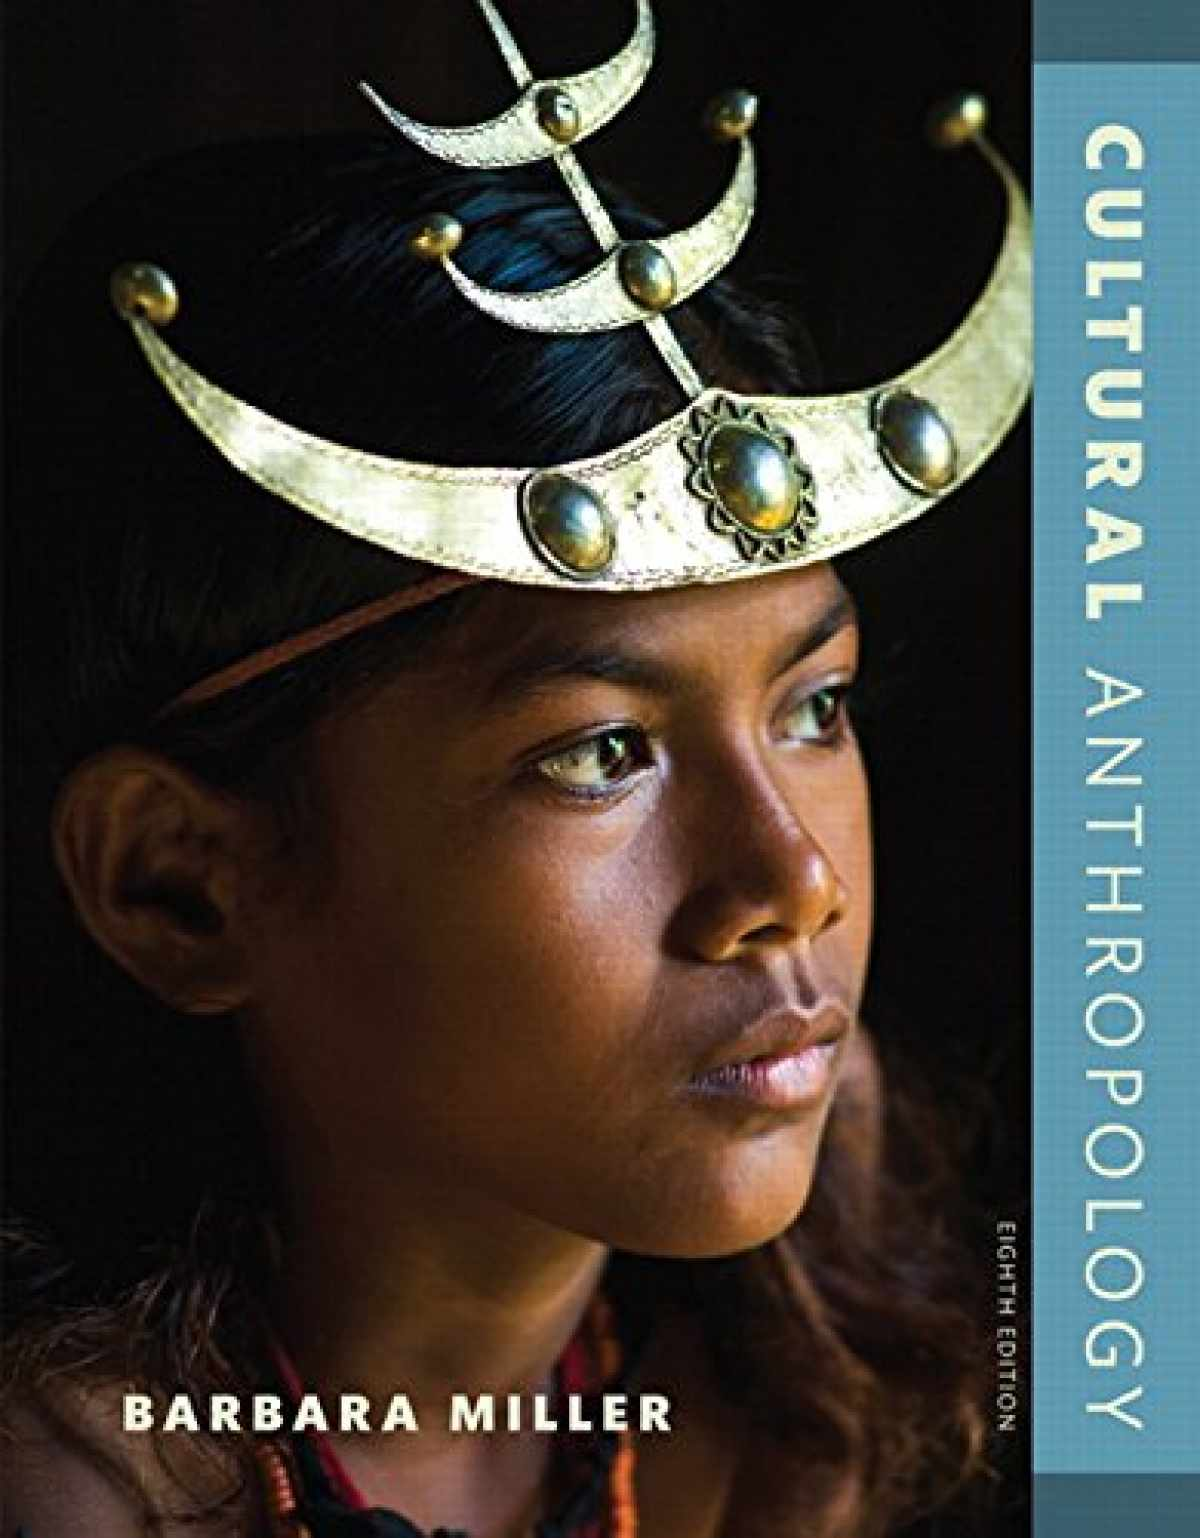 Test Bank for Cultural Anthropology, 8th Edition, Barbara D. Miller, ISBN-10: 0134419553, ISBN-13: 978-0134419558